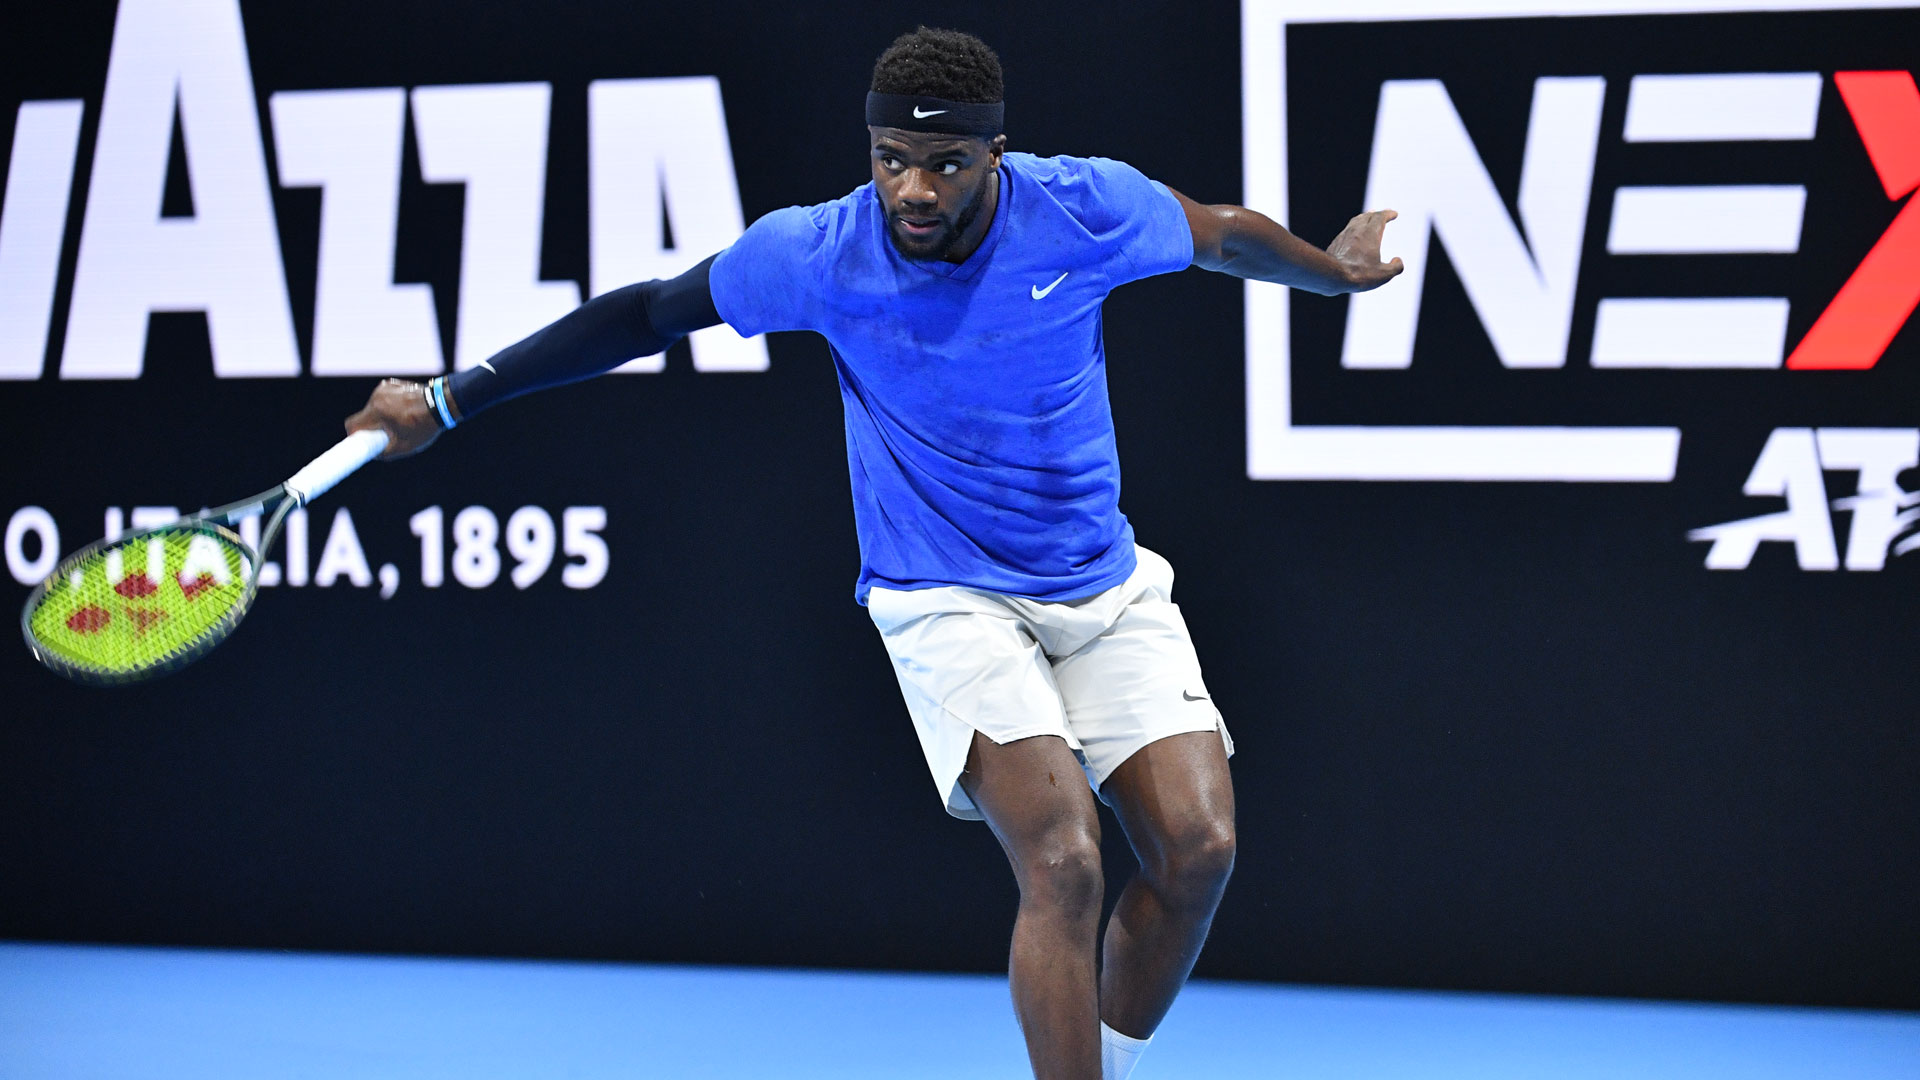 tiafoe-milan-2019-thursday-ng-2